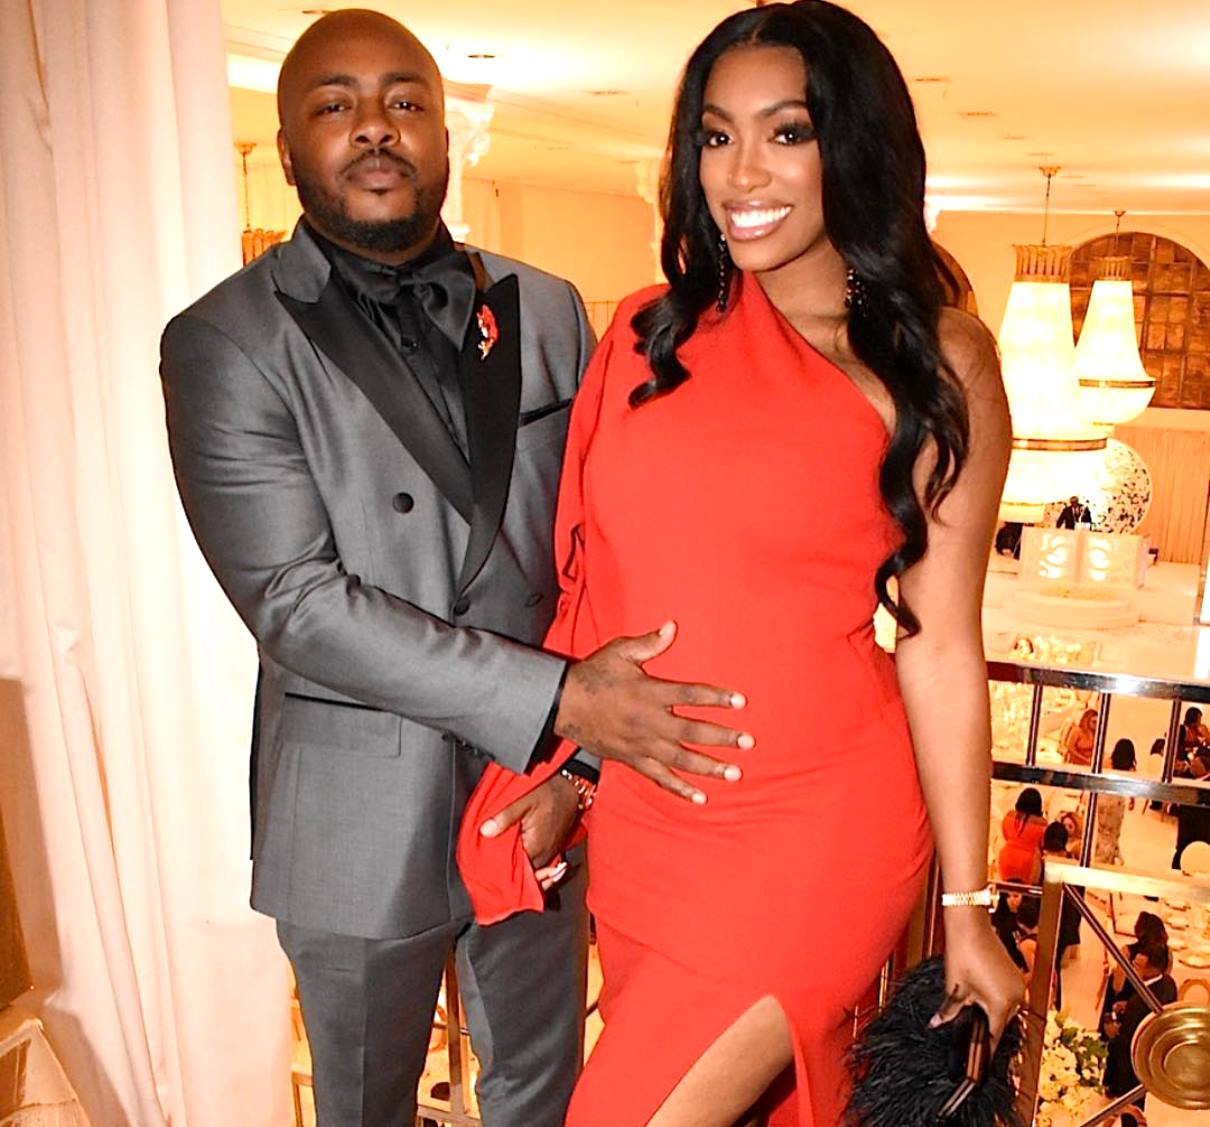 RHOA's Porsha Williams Reveals She's Trying to Get Pregnant Again One Week After Confirming She and Fiancé Dennis McKinley are Back Together